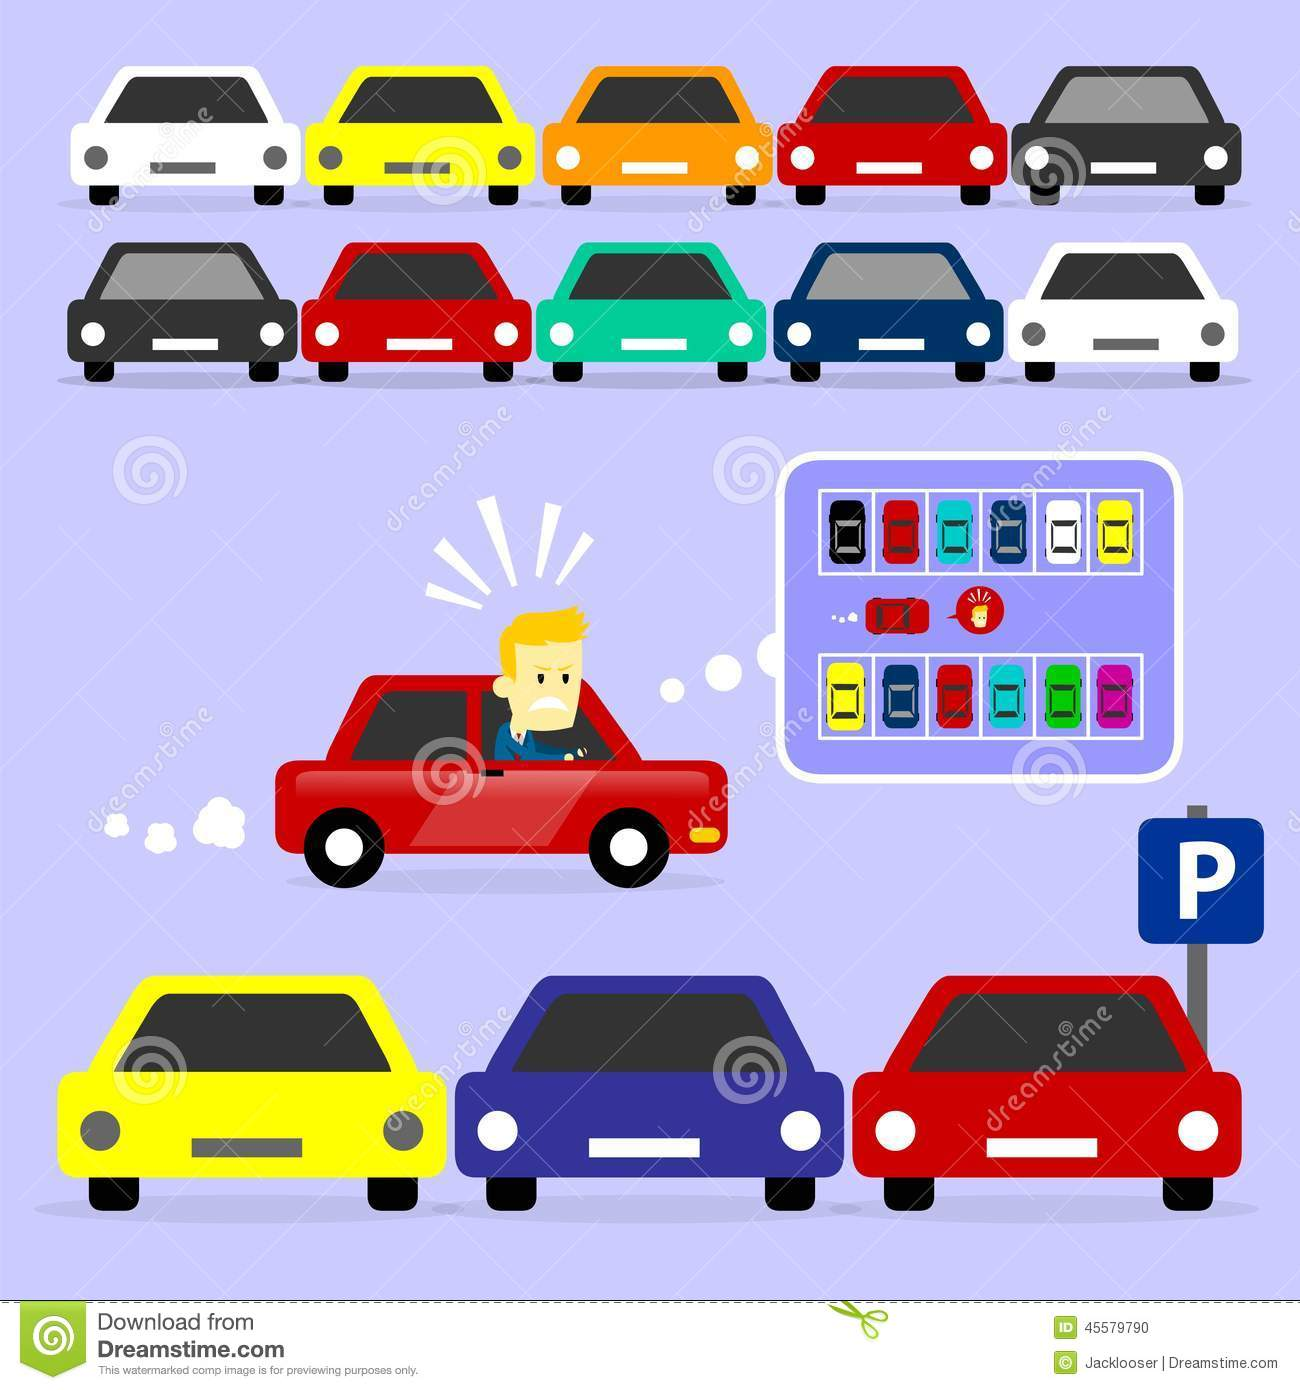 Crowded By Parked Cars